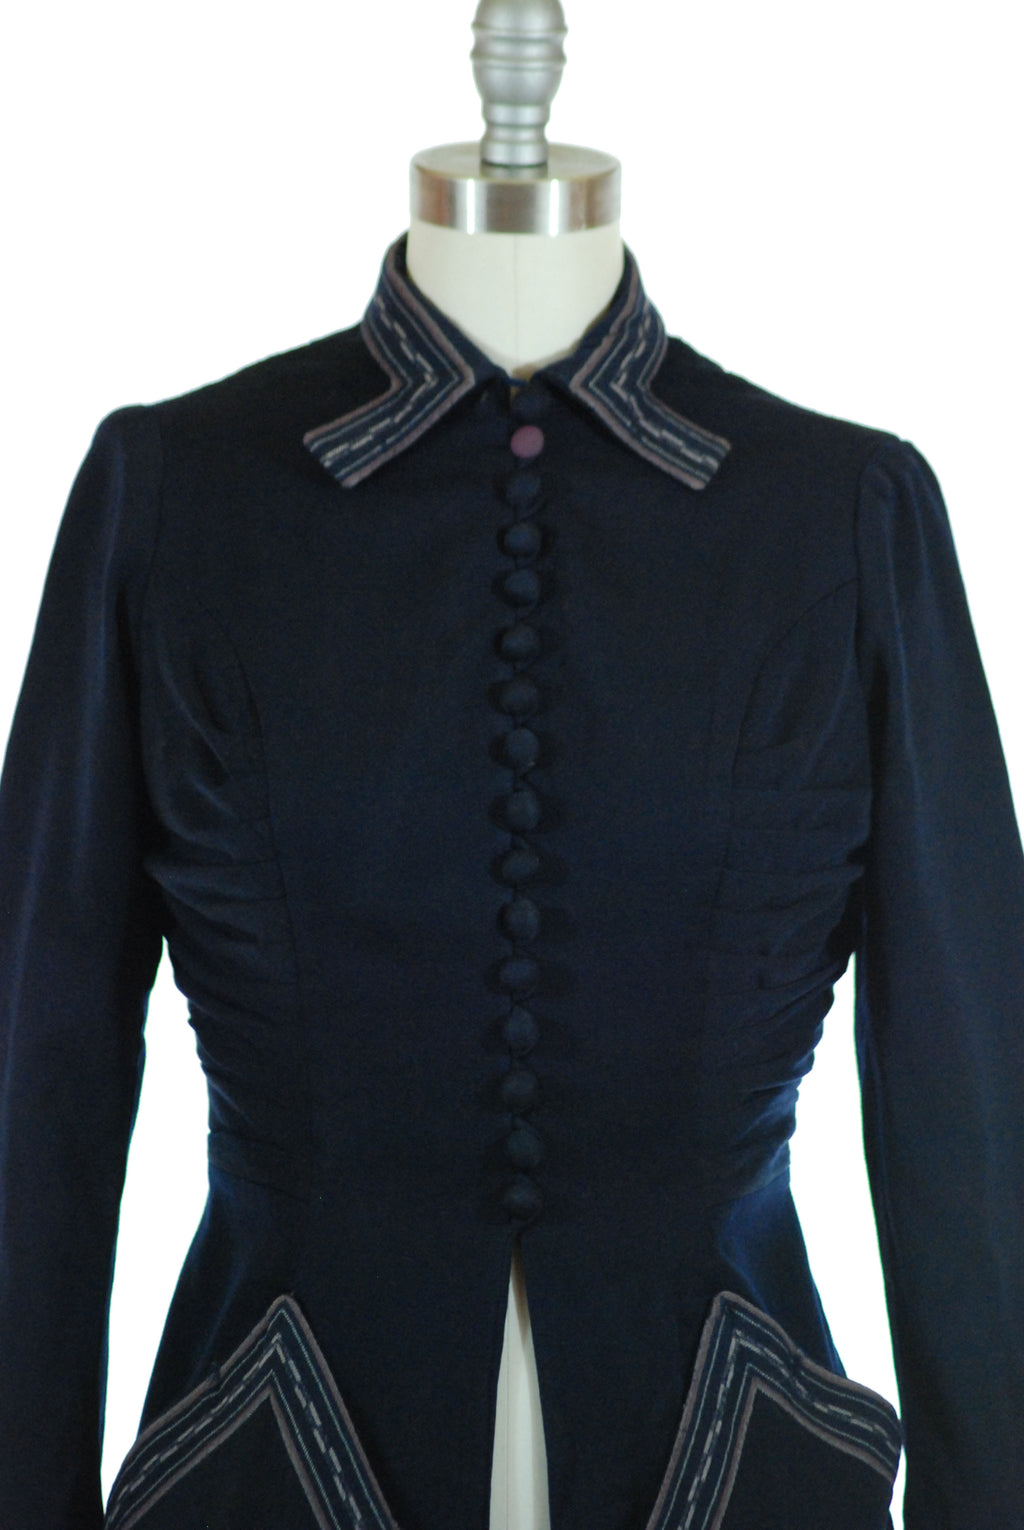 Smart 1950s Lilli Ann Tailored Jacket with Woven Trim As-Is